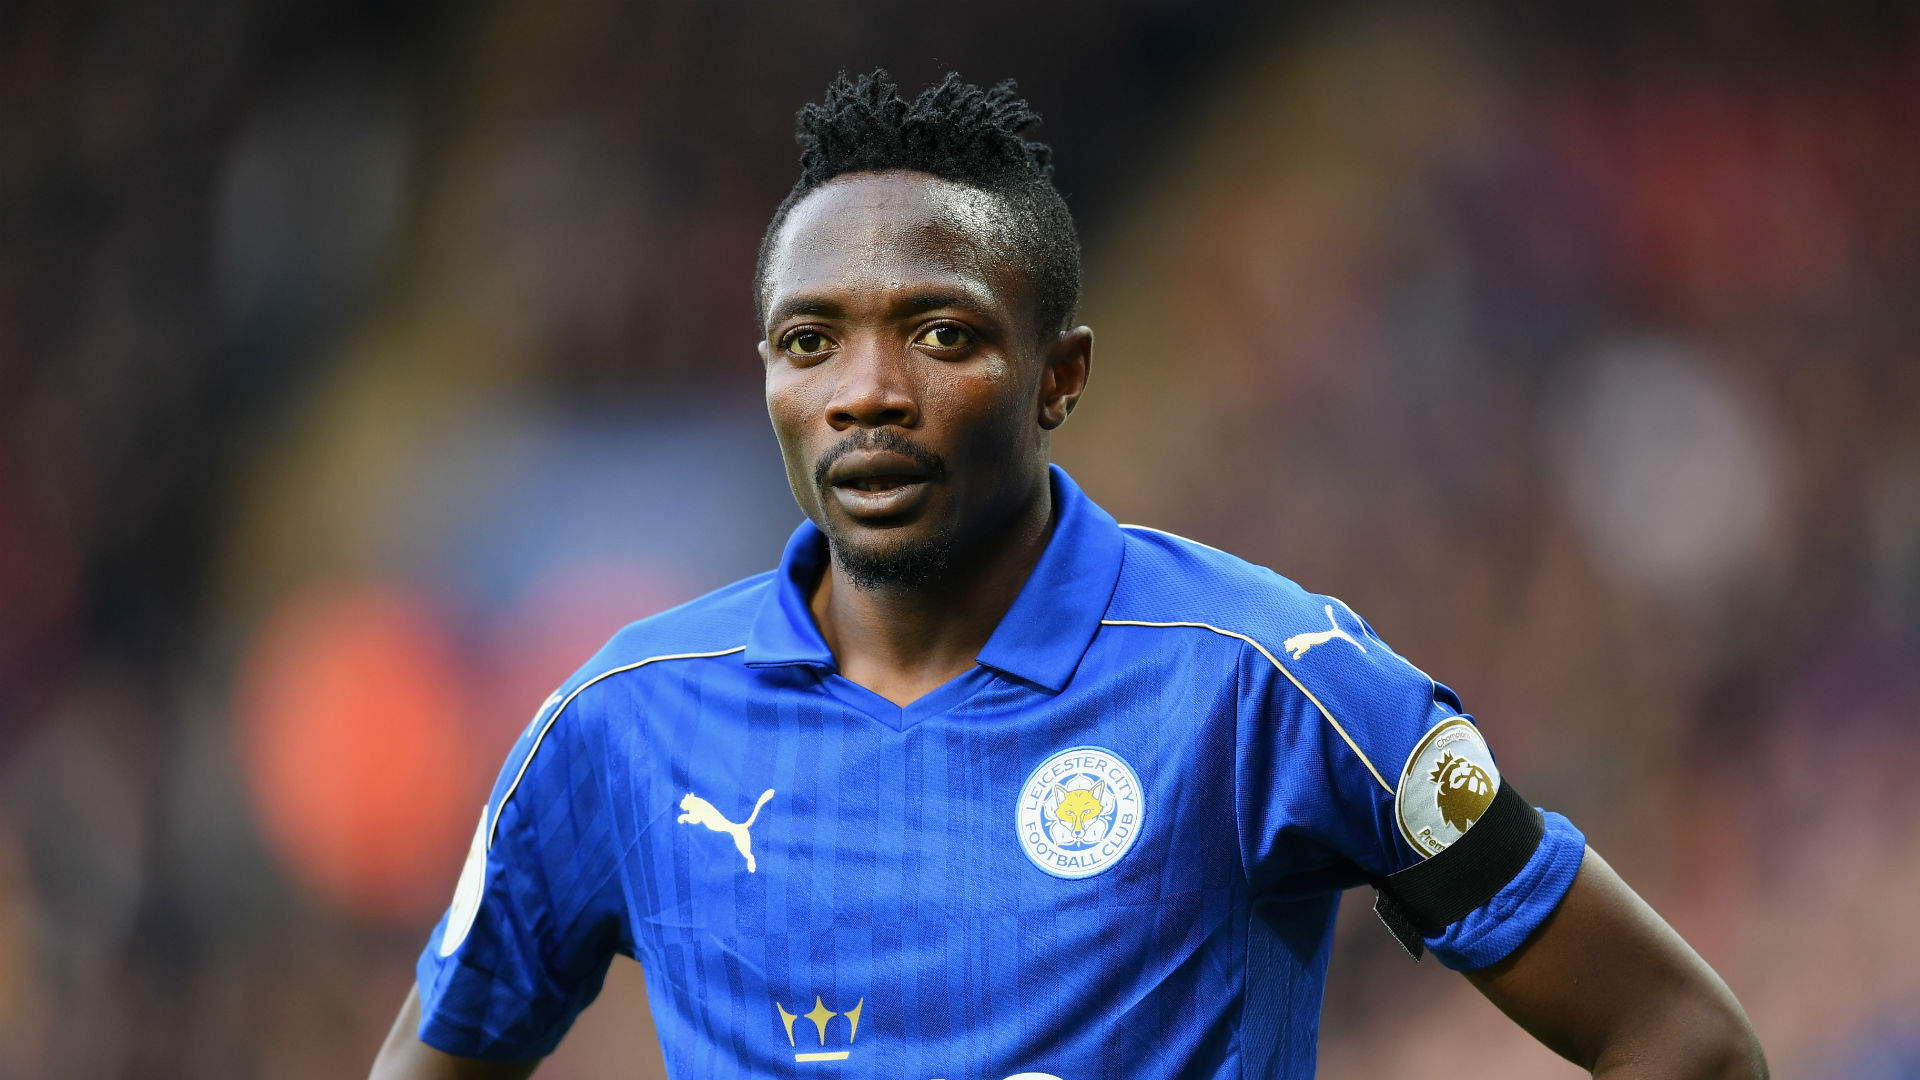 Den 25-år gammal, 170 cm lång Ahmed Musa in 2018 photo